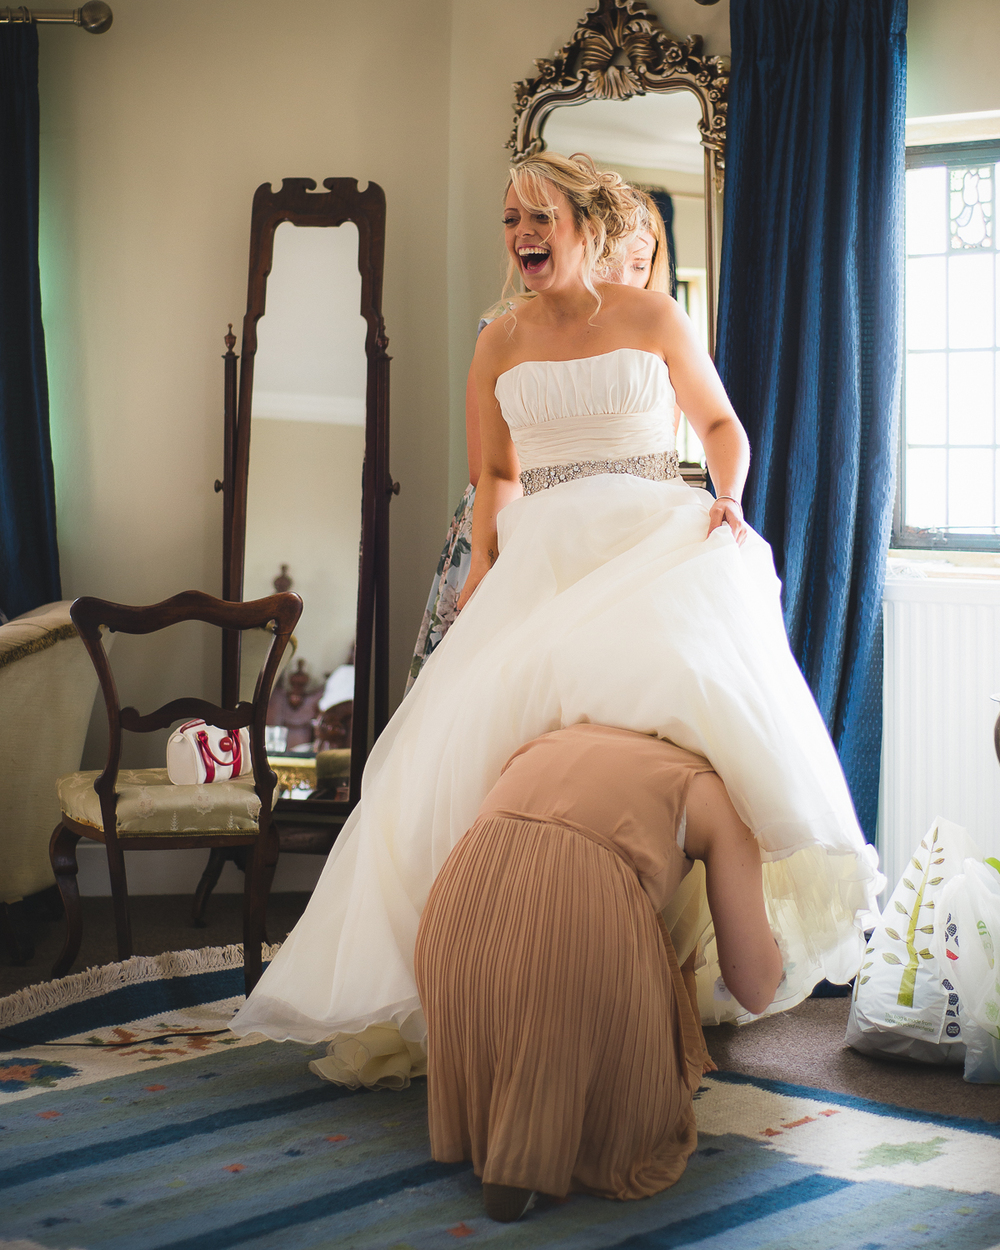 wedding-photographer-bristol-walton-castle-25.jpg